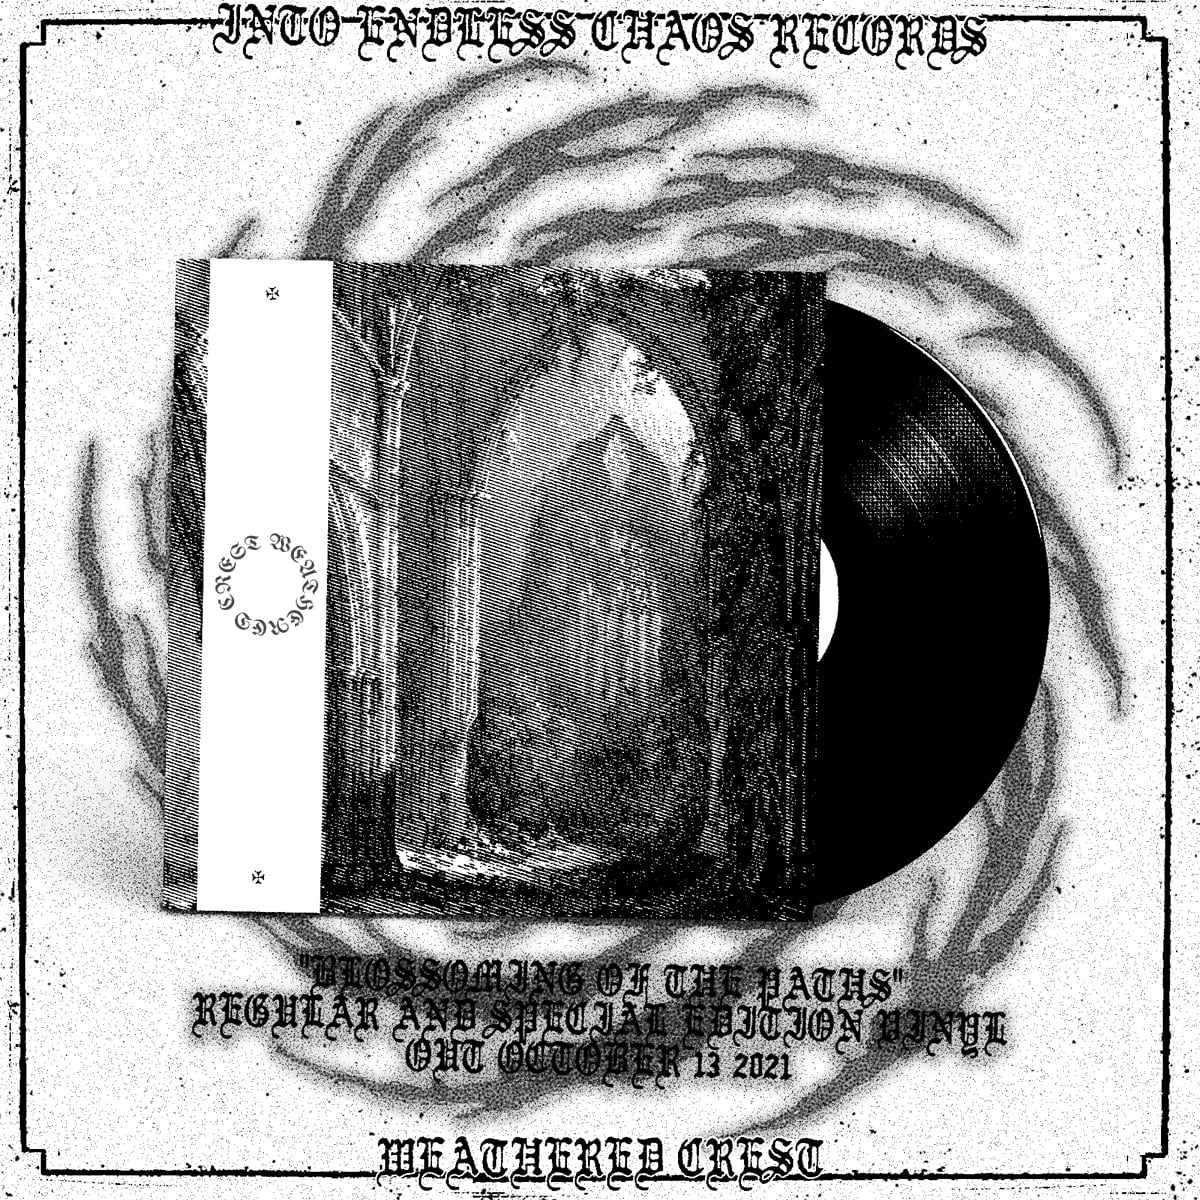 Weathered Crest - Blossoming of the Paths | Out soon!